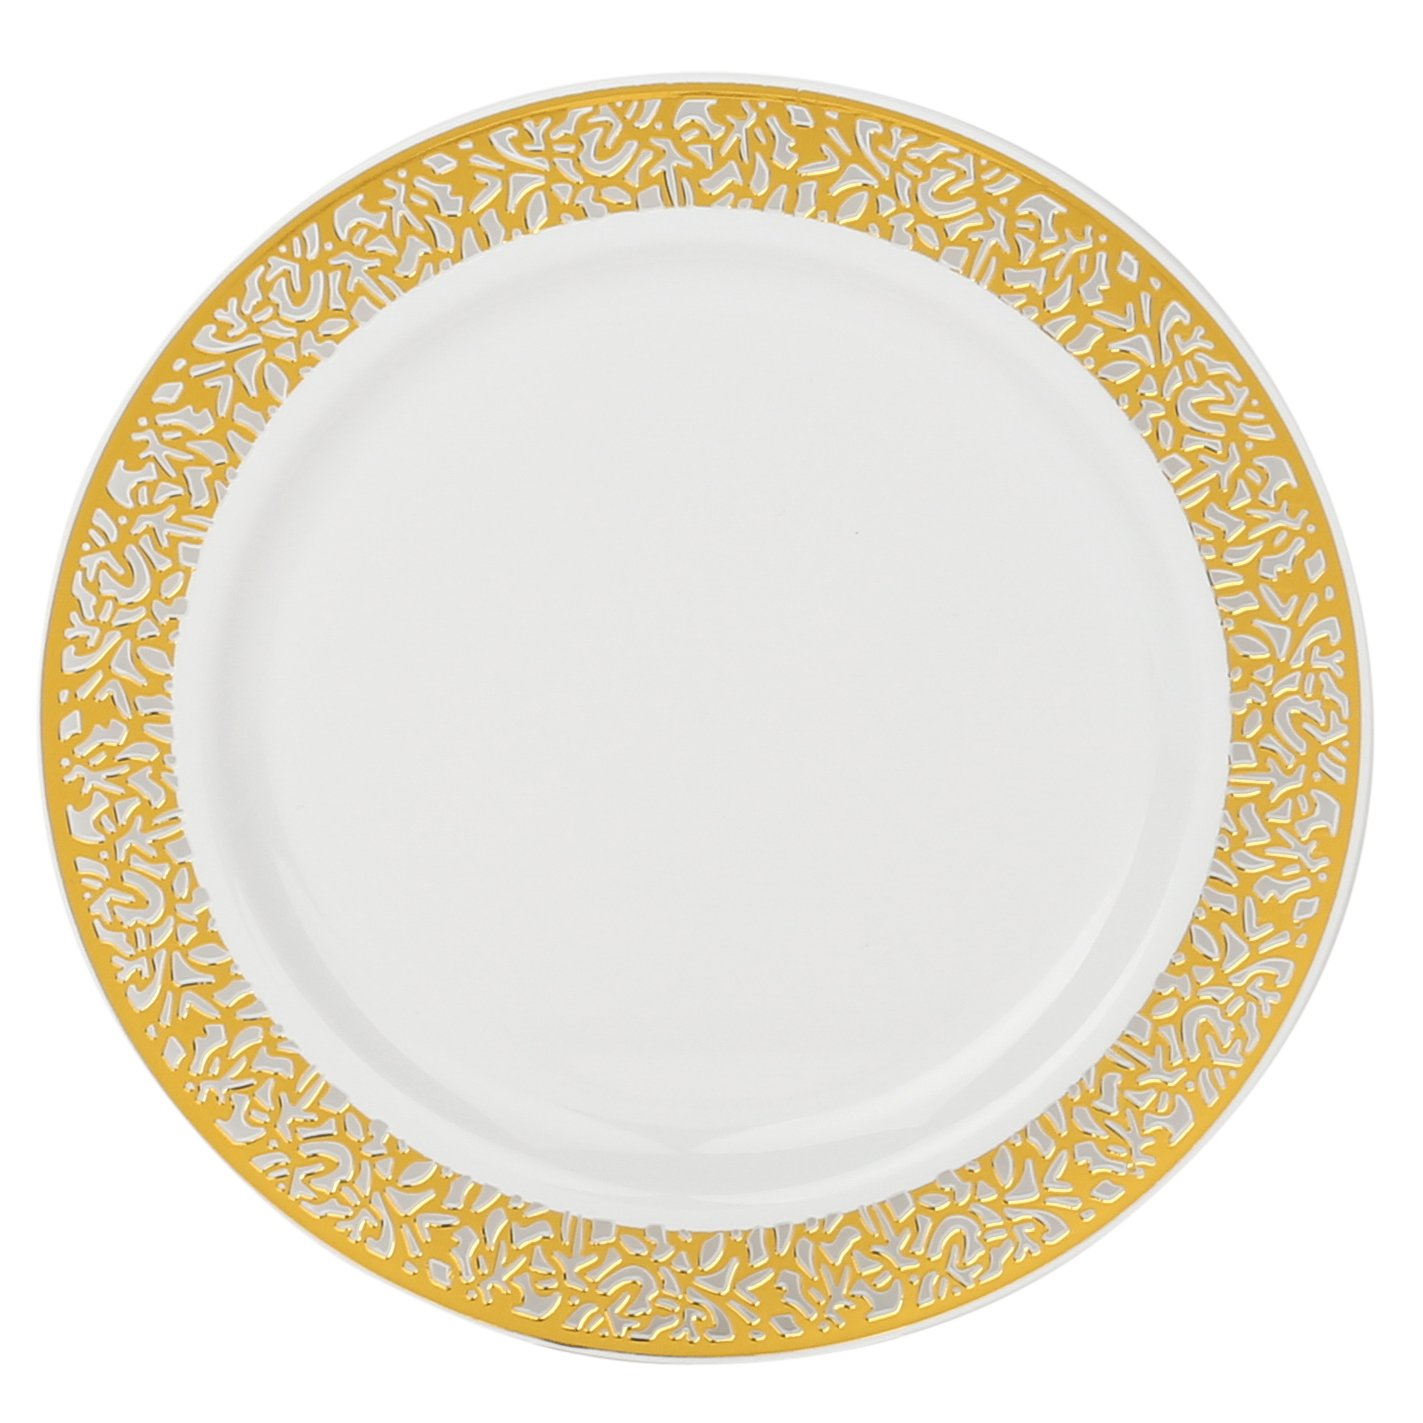 Kaya Collection - Disposable White with Gold Lace Rim Plastic Round 7.5'' Salad/Dessert Plates - 1 Case (120 Plates)